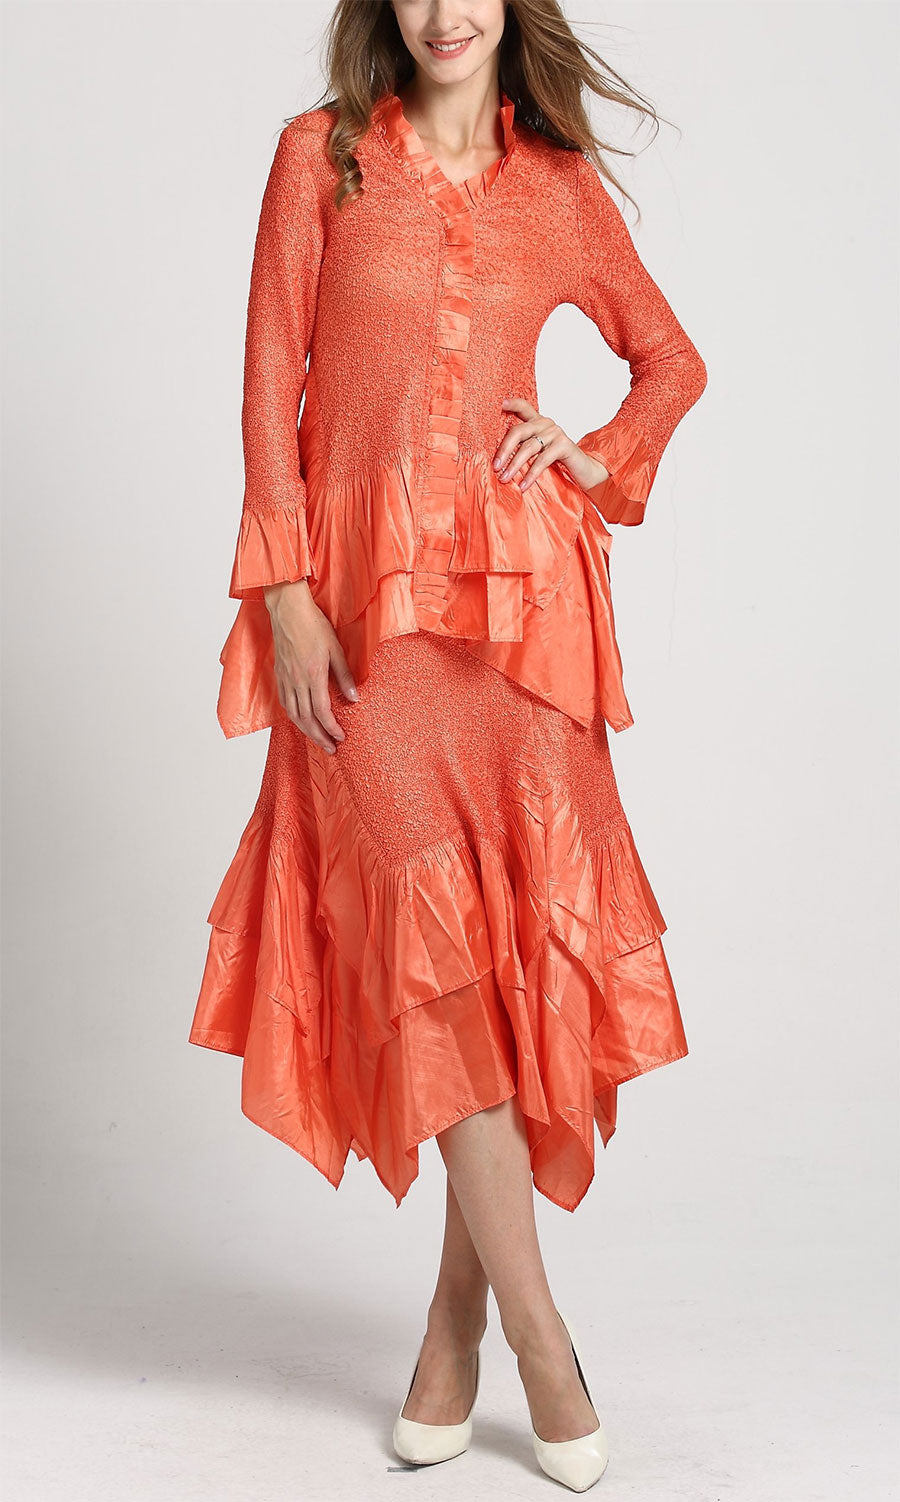 Jerry T Skirt Set SR7151-Orange - Church Suits For Less